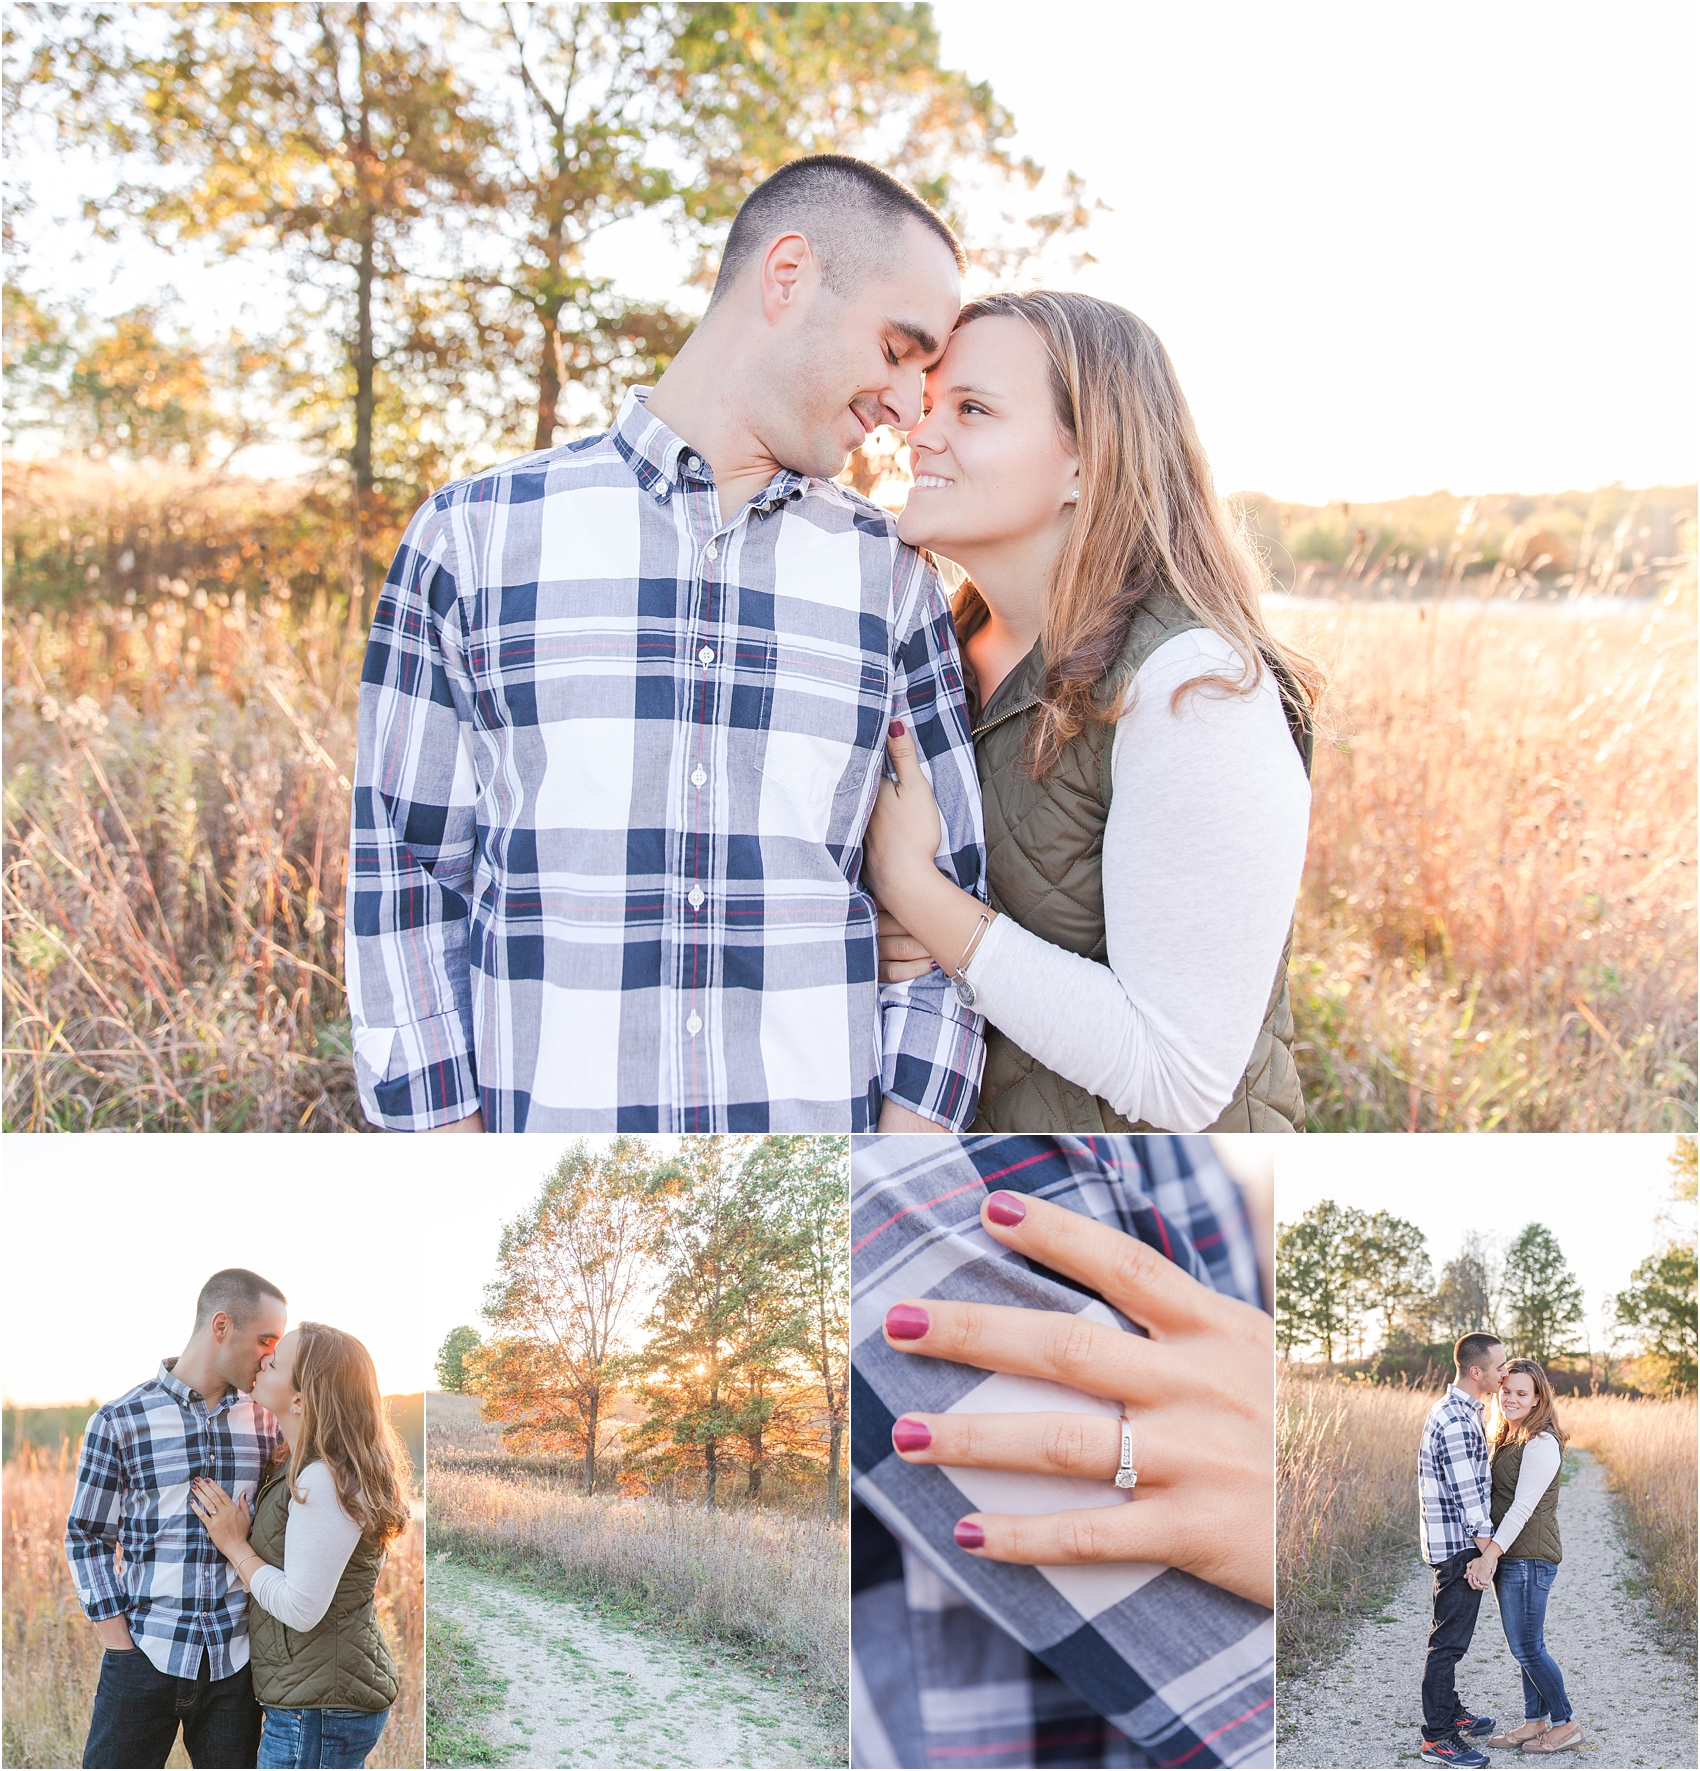 romantic-fall-engagement-photos-at-indian-springs-metropark-in-clarkston-mi-by-courtney-carolyn-photography_0035.jpg